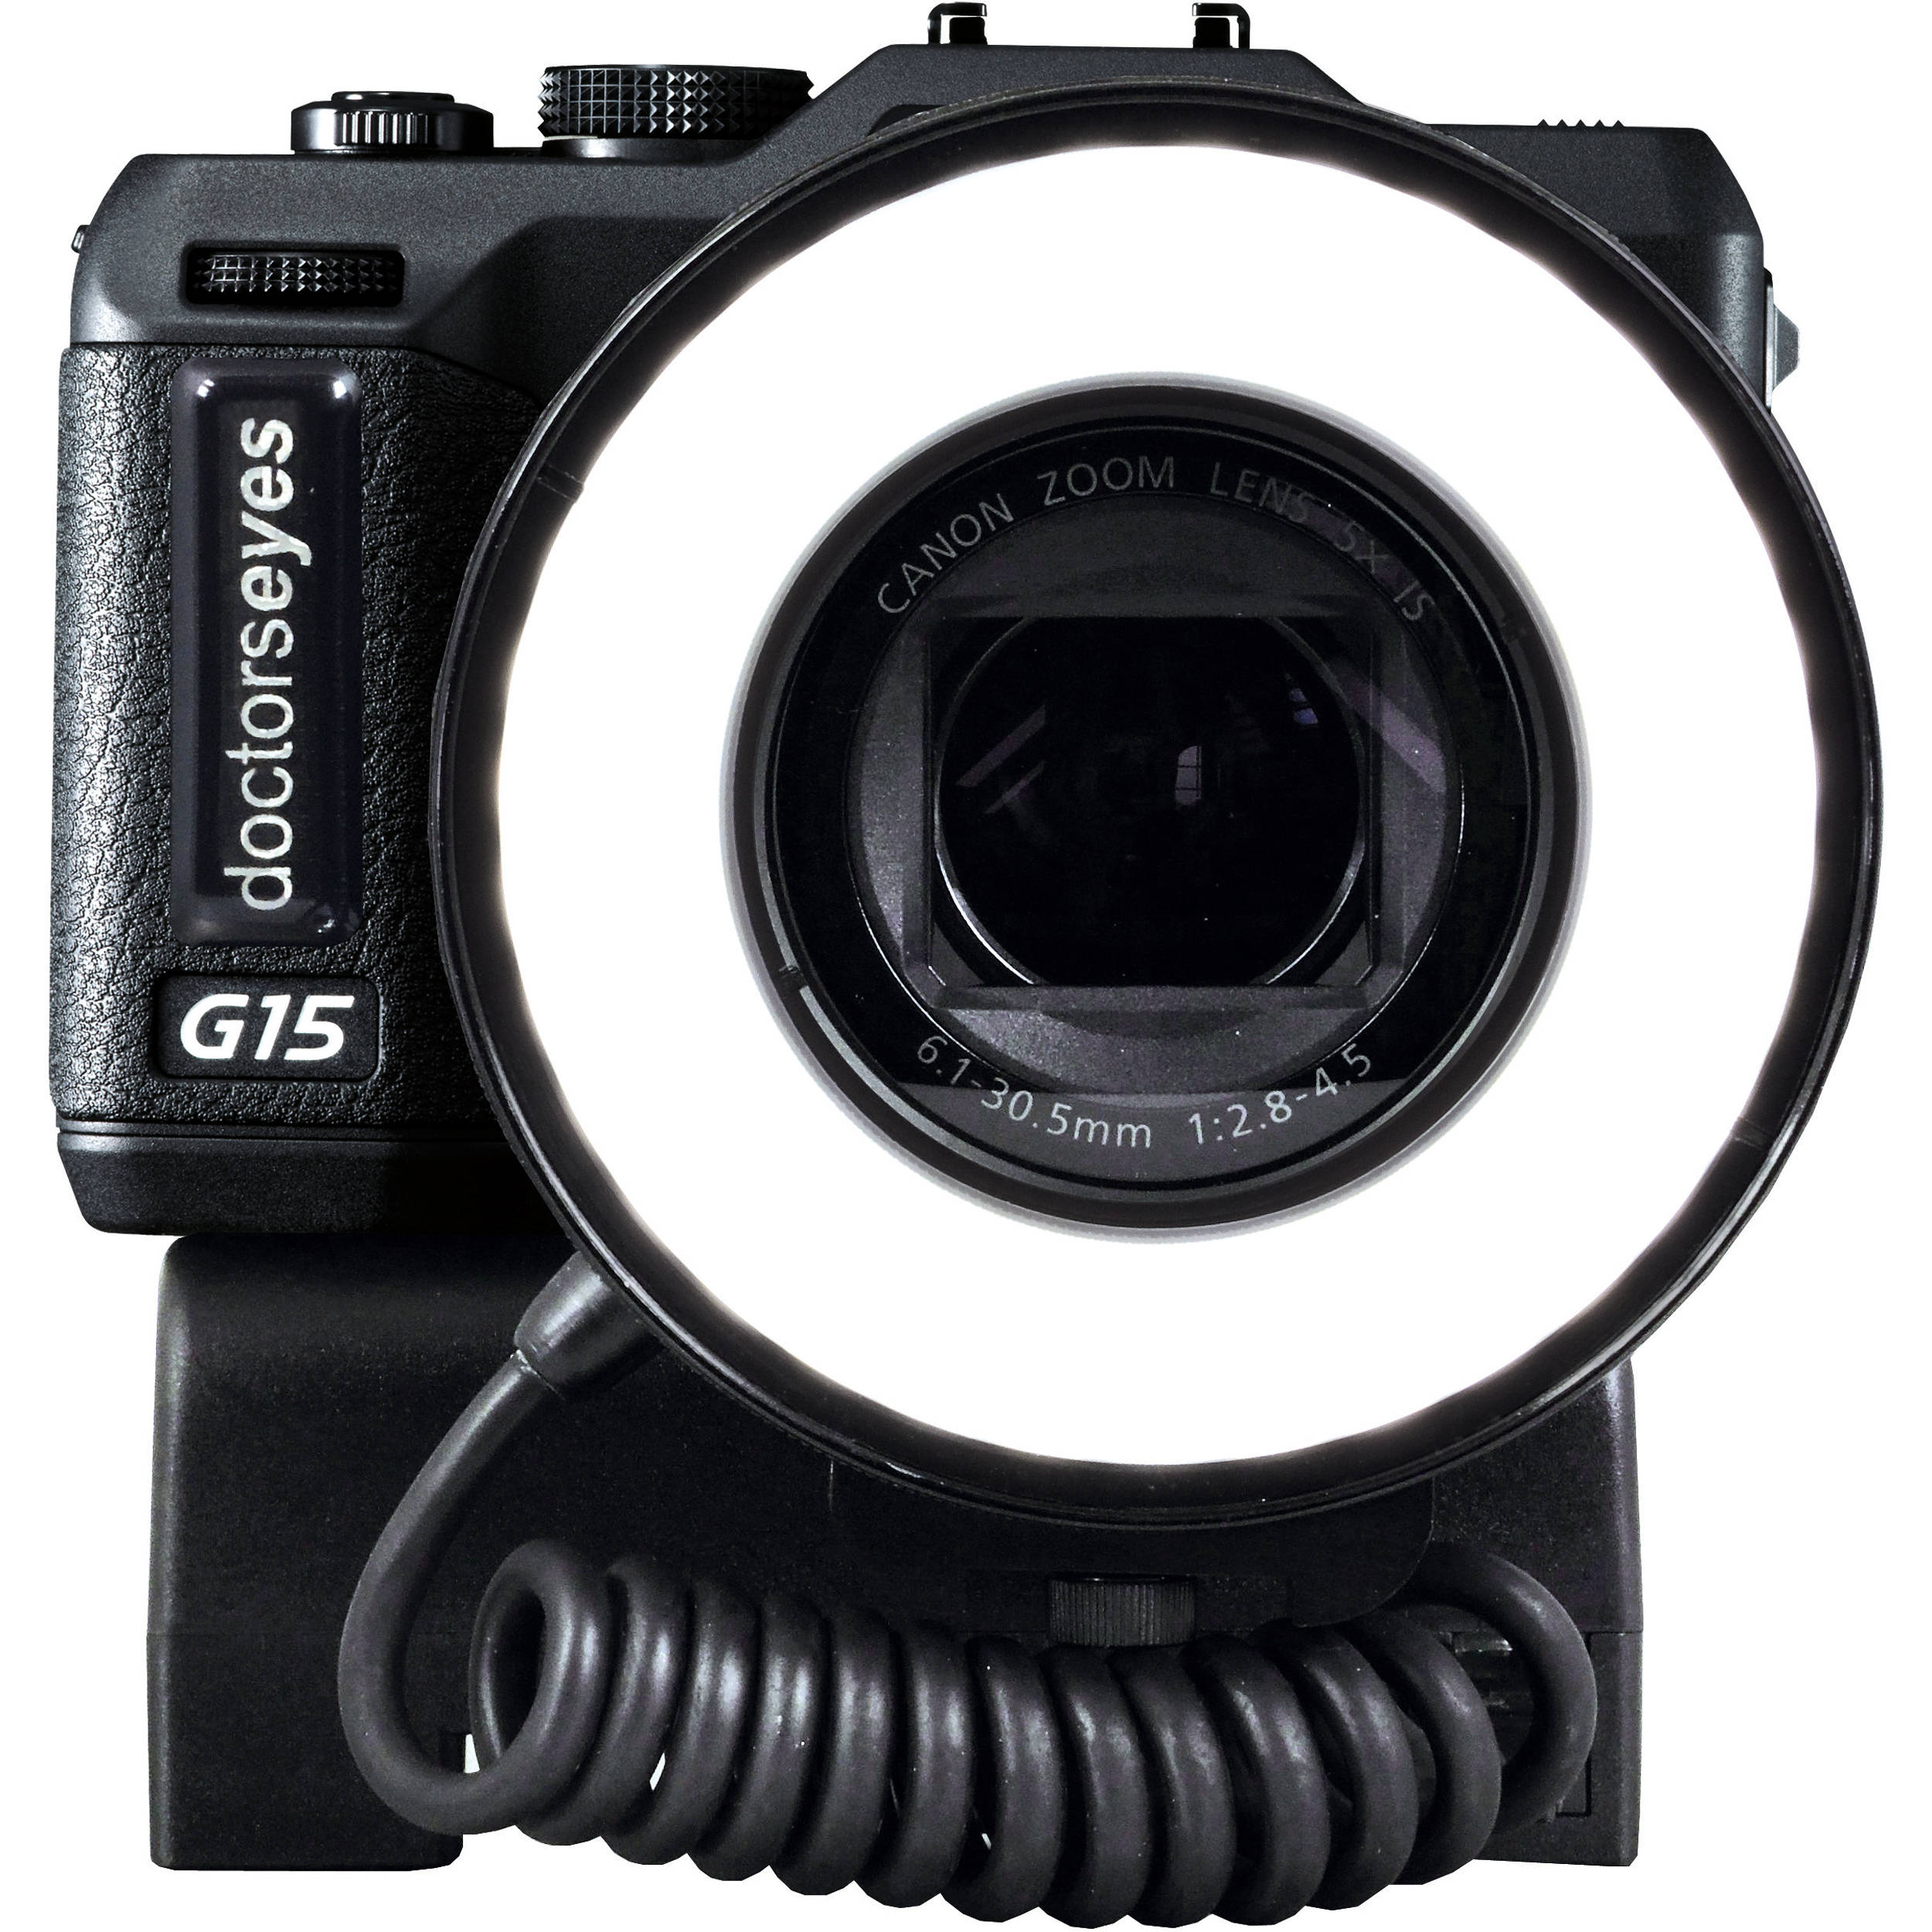 Ring Light For Compact Camera